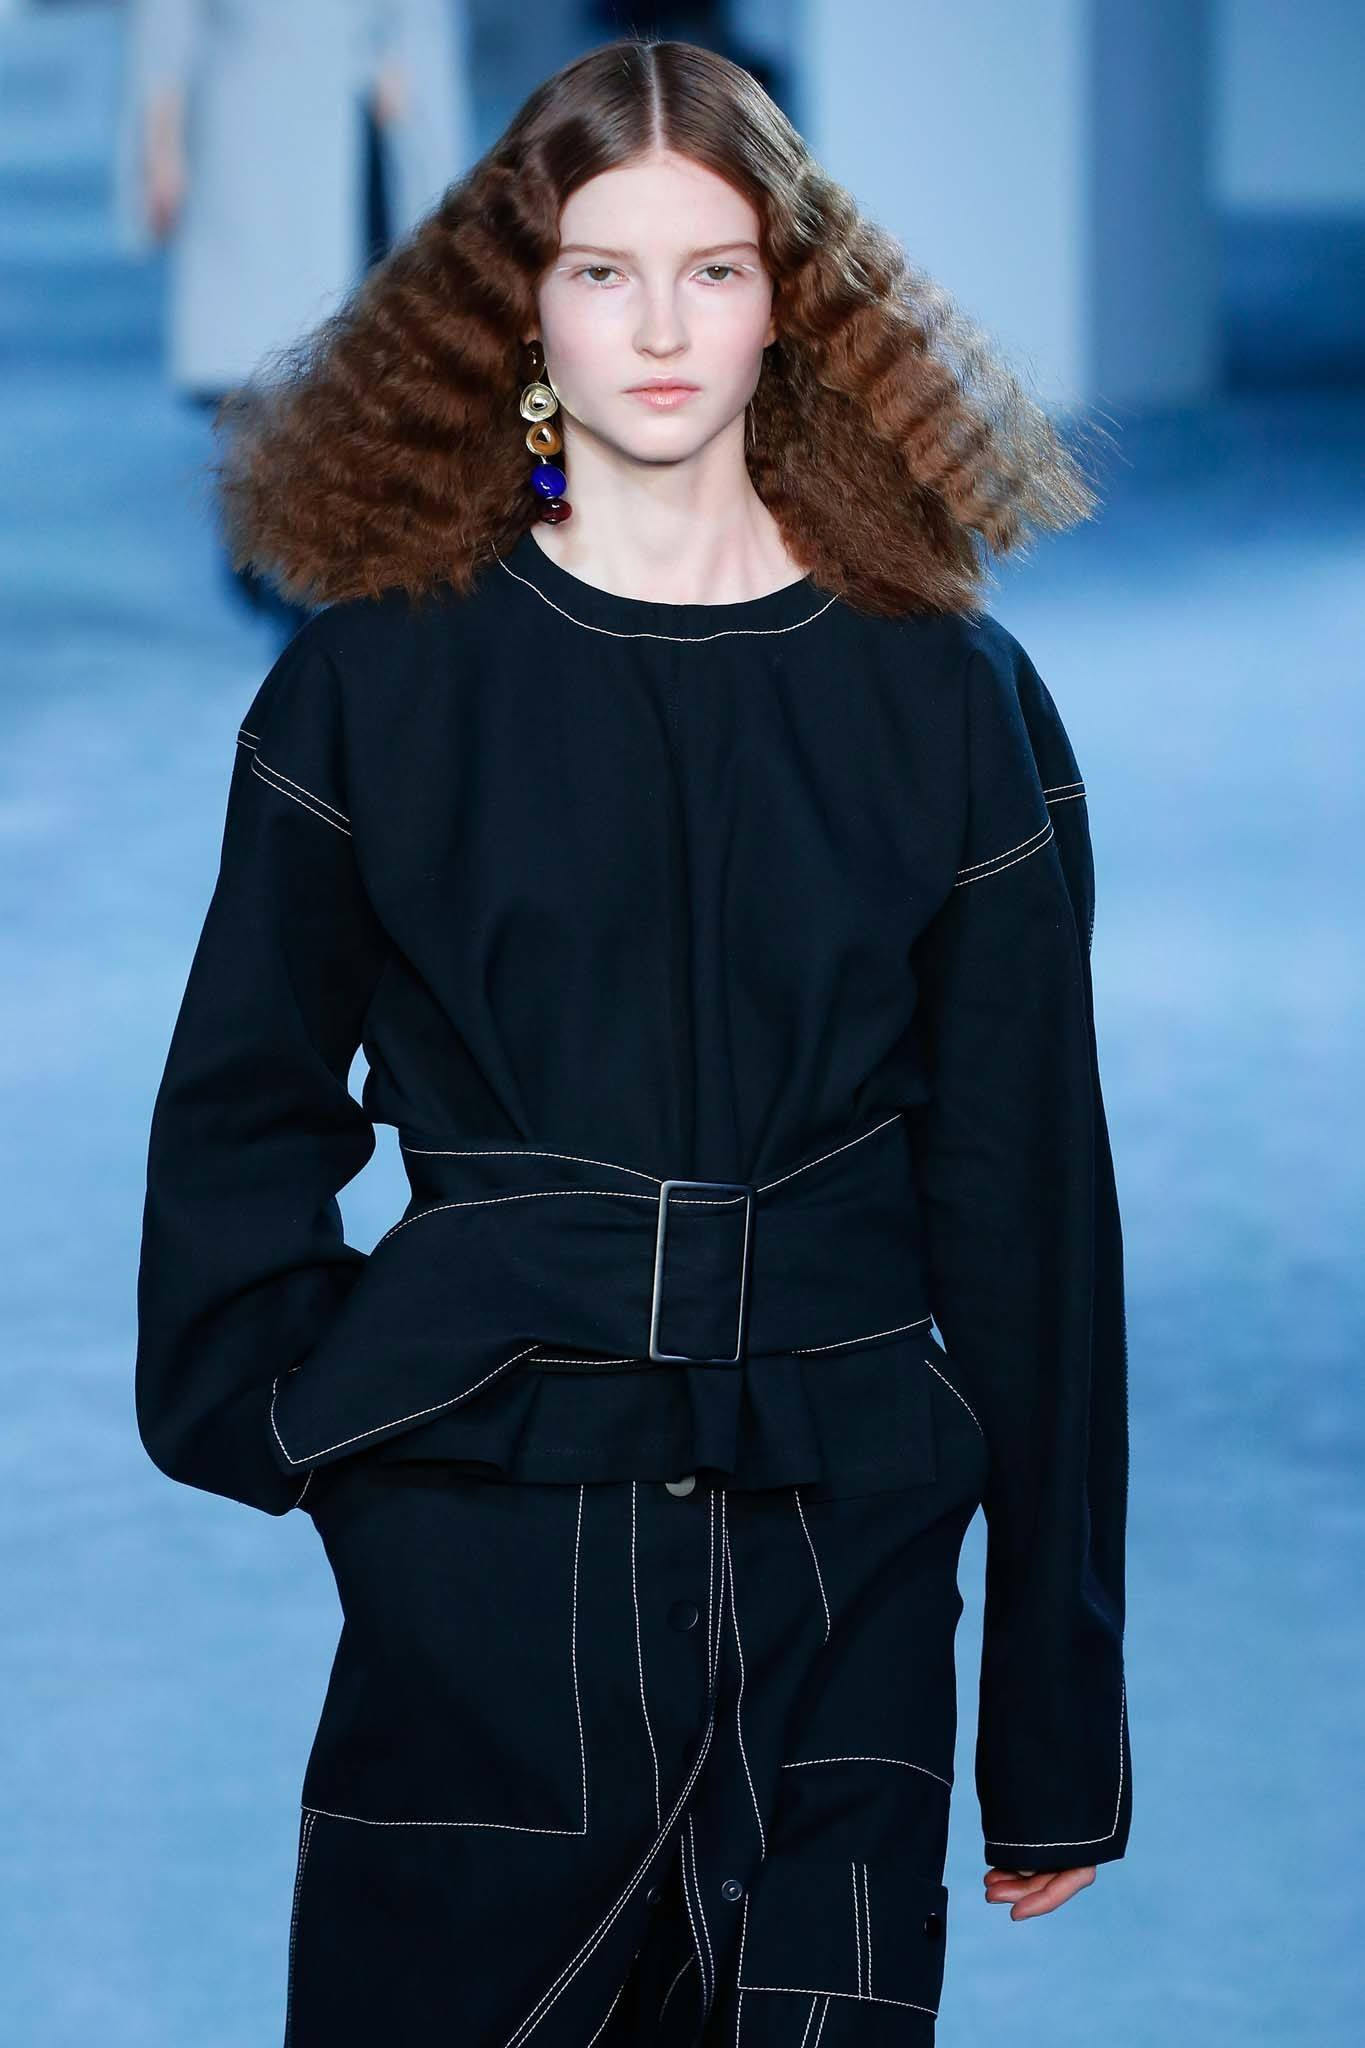 NYFW Catwalk Trends: Model on 3.1 Phillip Lim FW19 runway with brown crimped shoulder length hair.